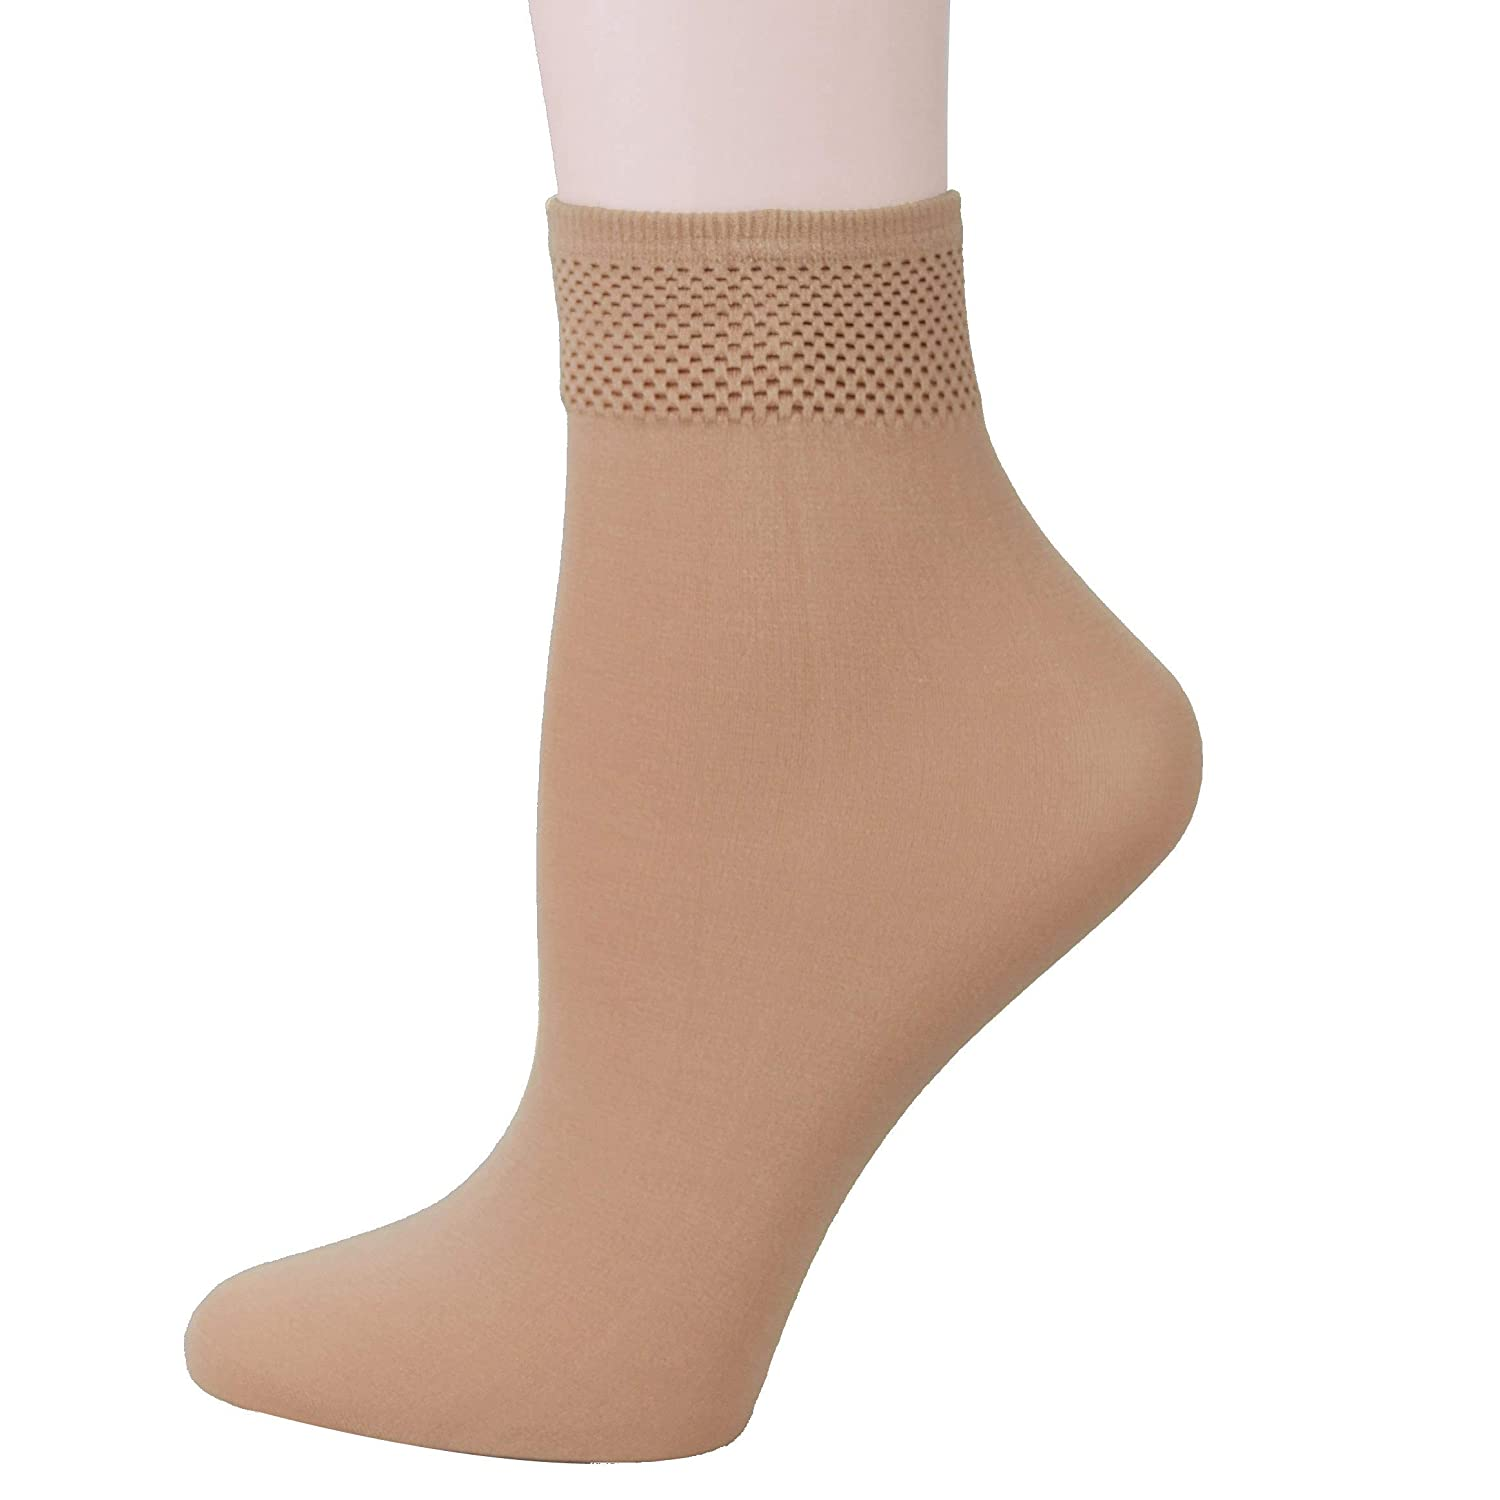 d36645023bf Fitu Women s 10 Pairs Modal Opaque Ankle High Tights Hosiery Socks (Beige)  9-11 Beige at Amazon Women s Clothing store